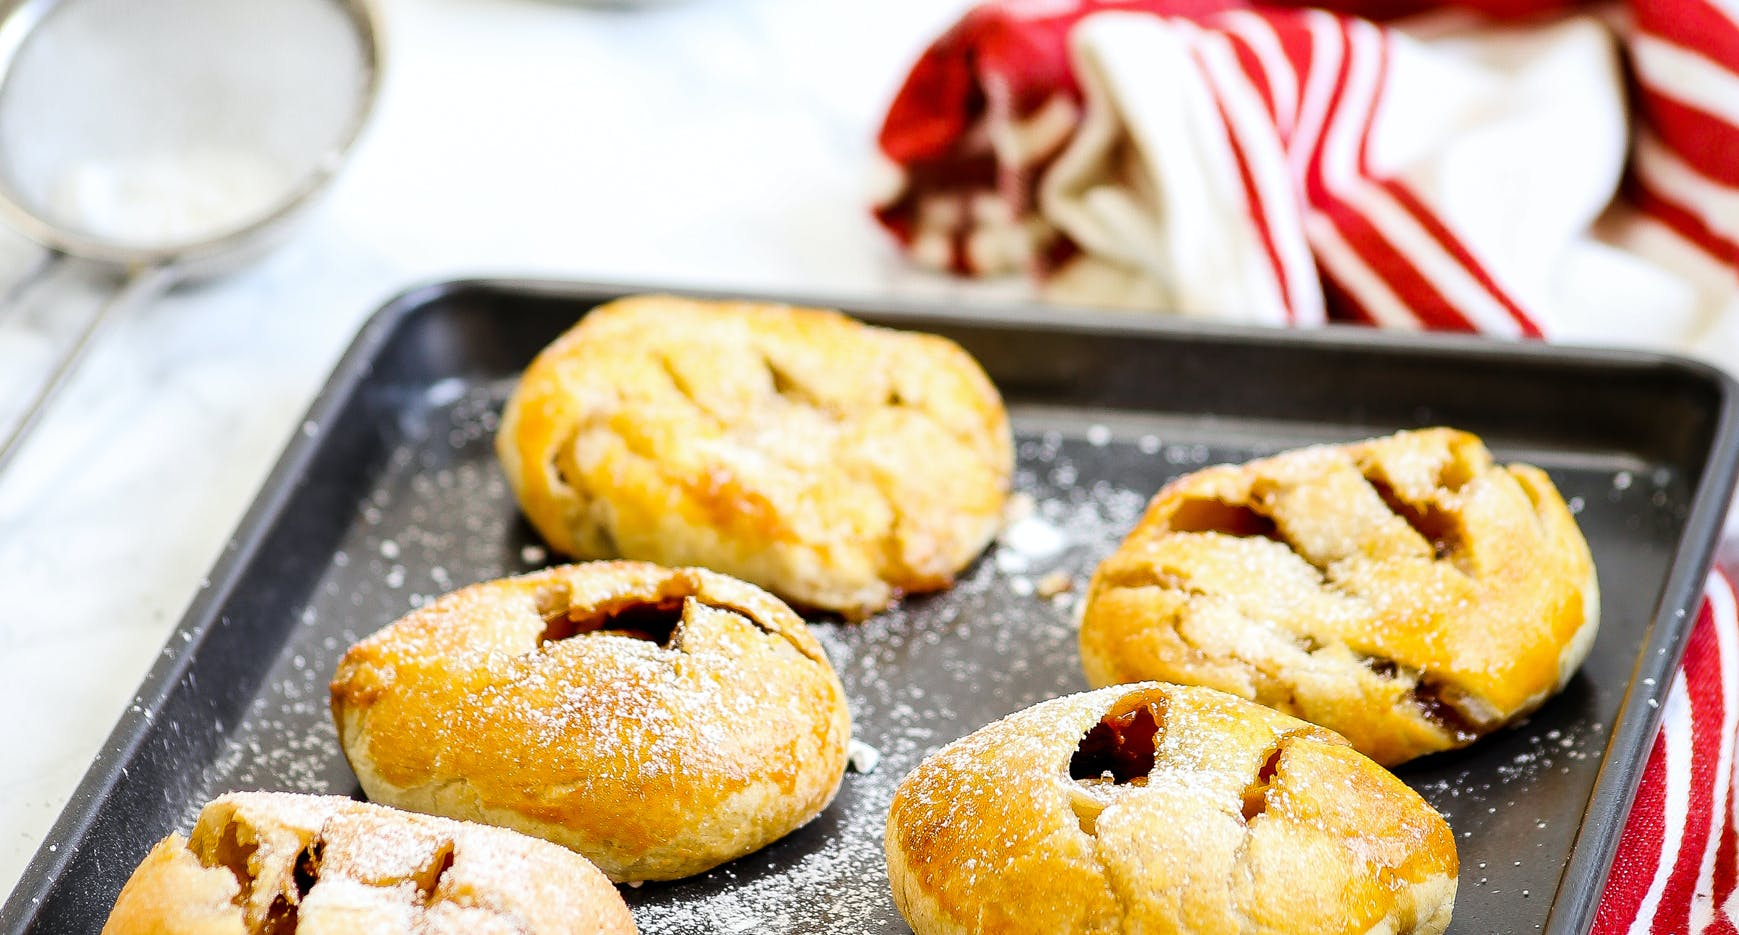 Sour Cherry and Apple Eccles Cakes